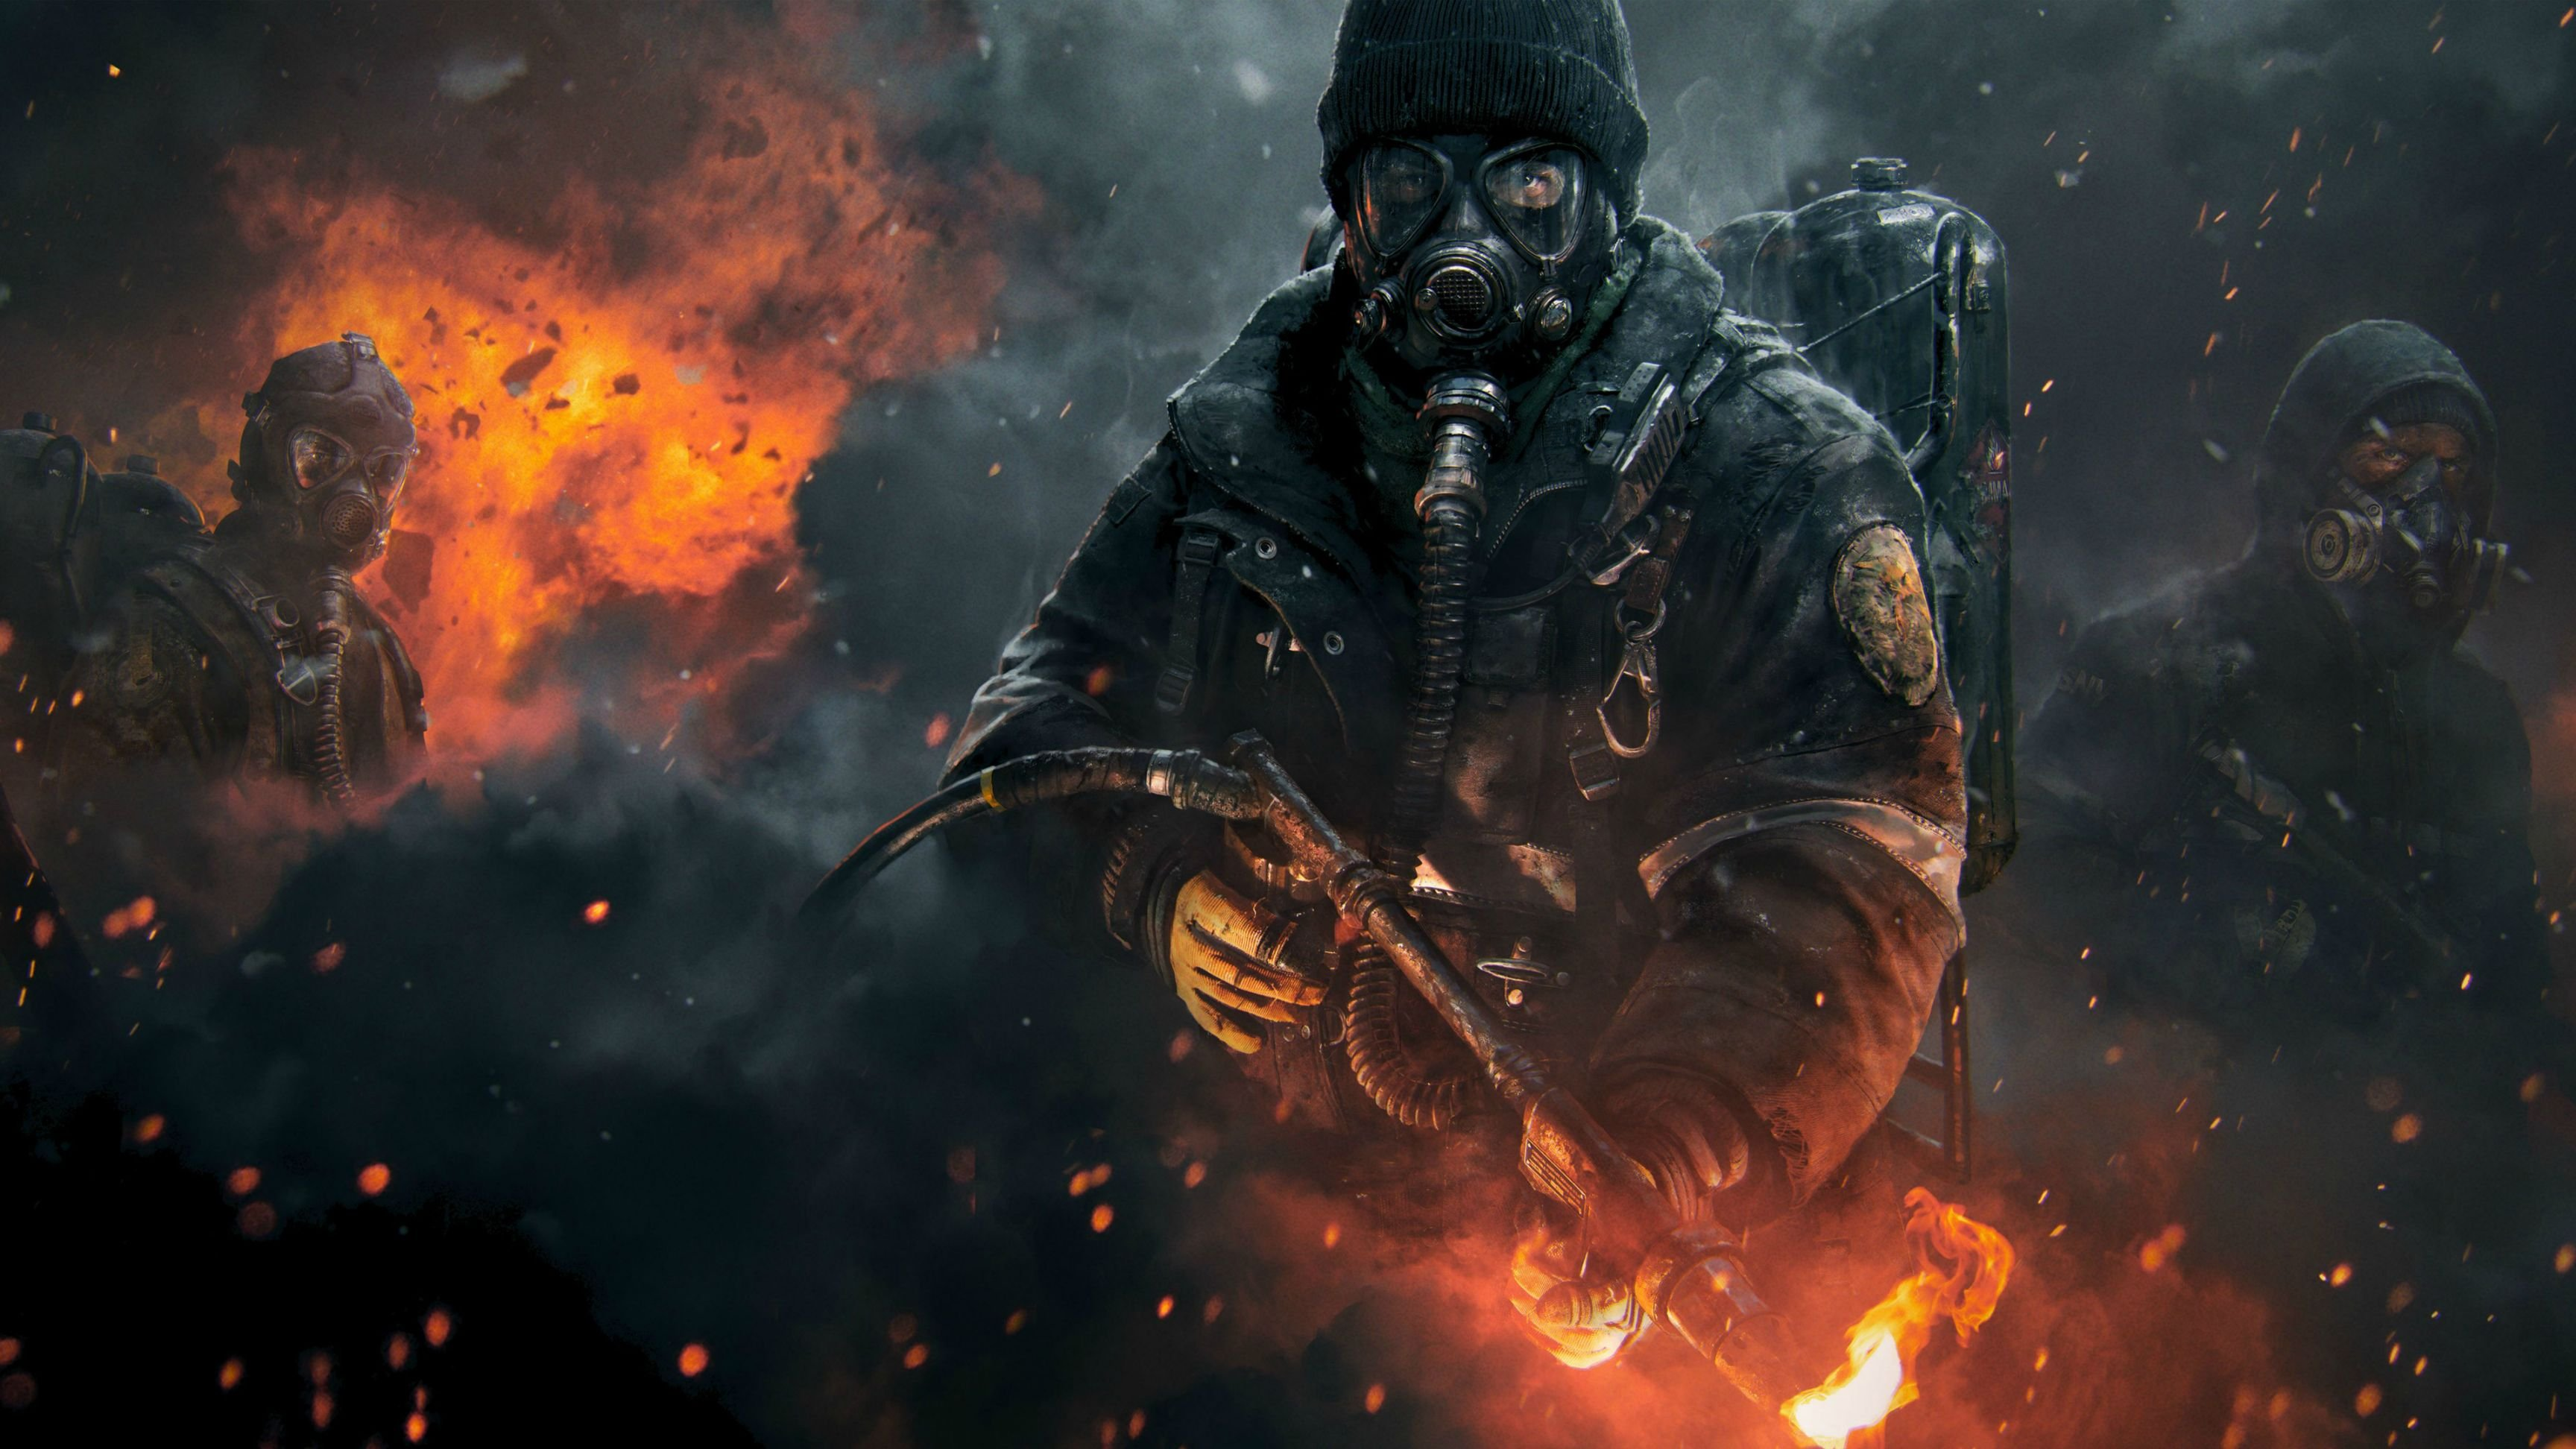 division wallpapers  photos and desktop backgrounds up to 8k  7680x4320  resolution